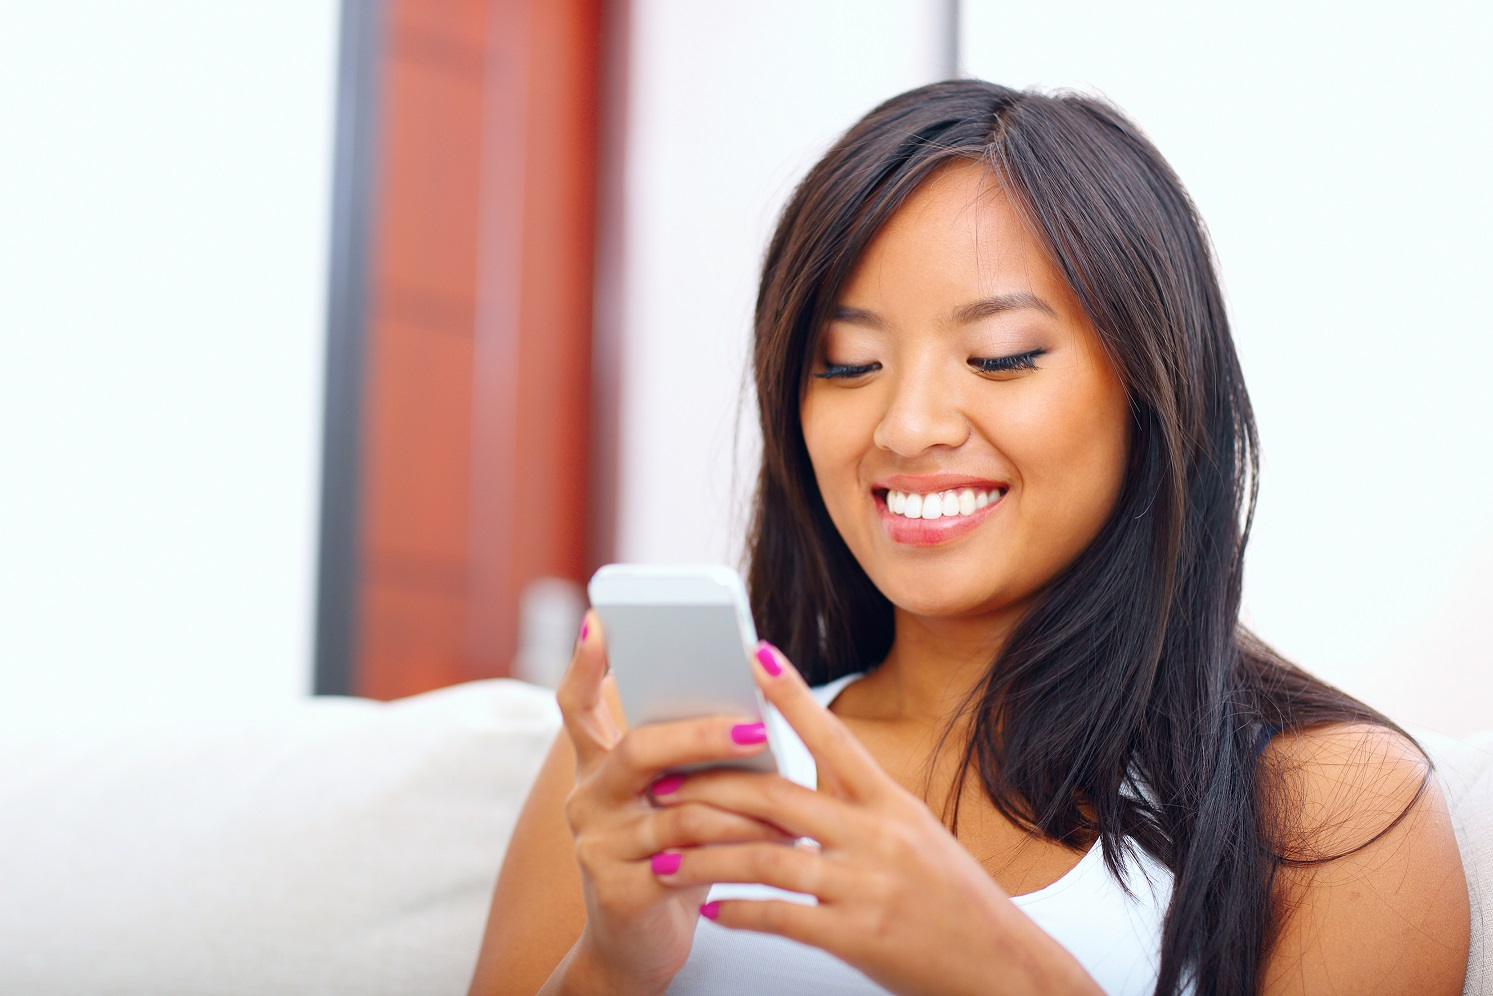 What to text after a first date